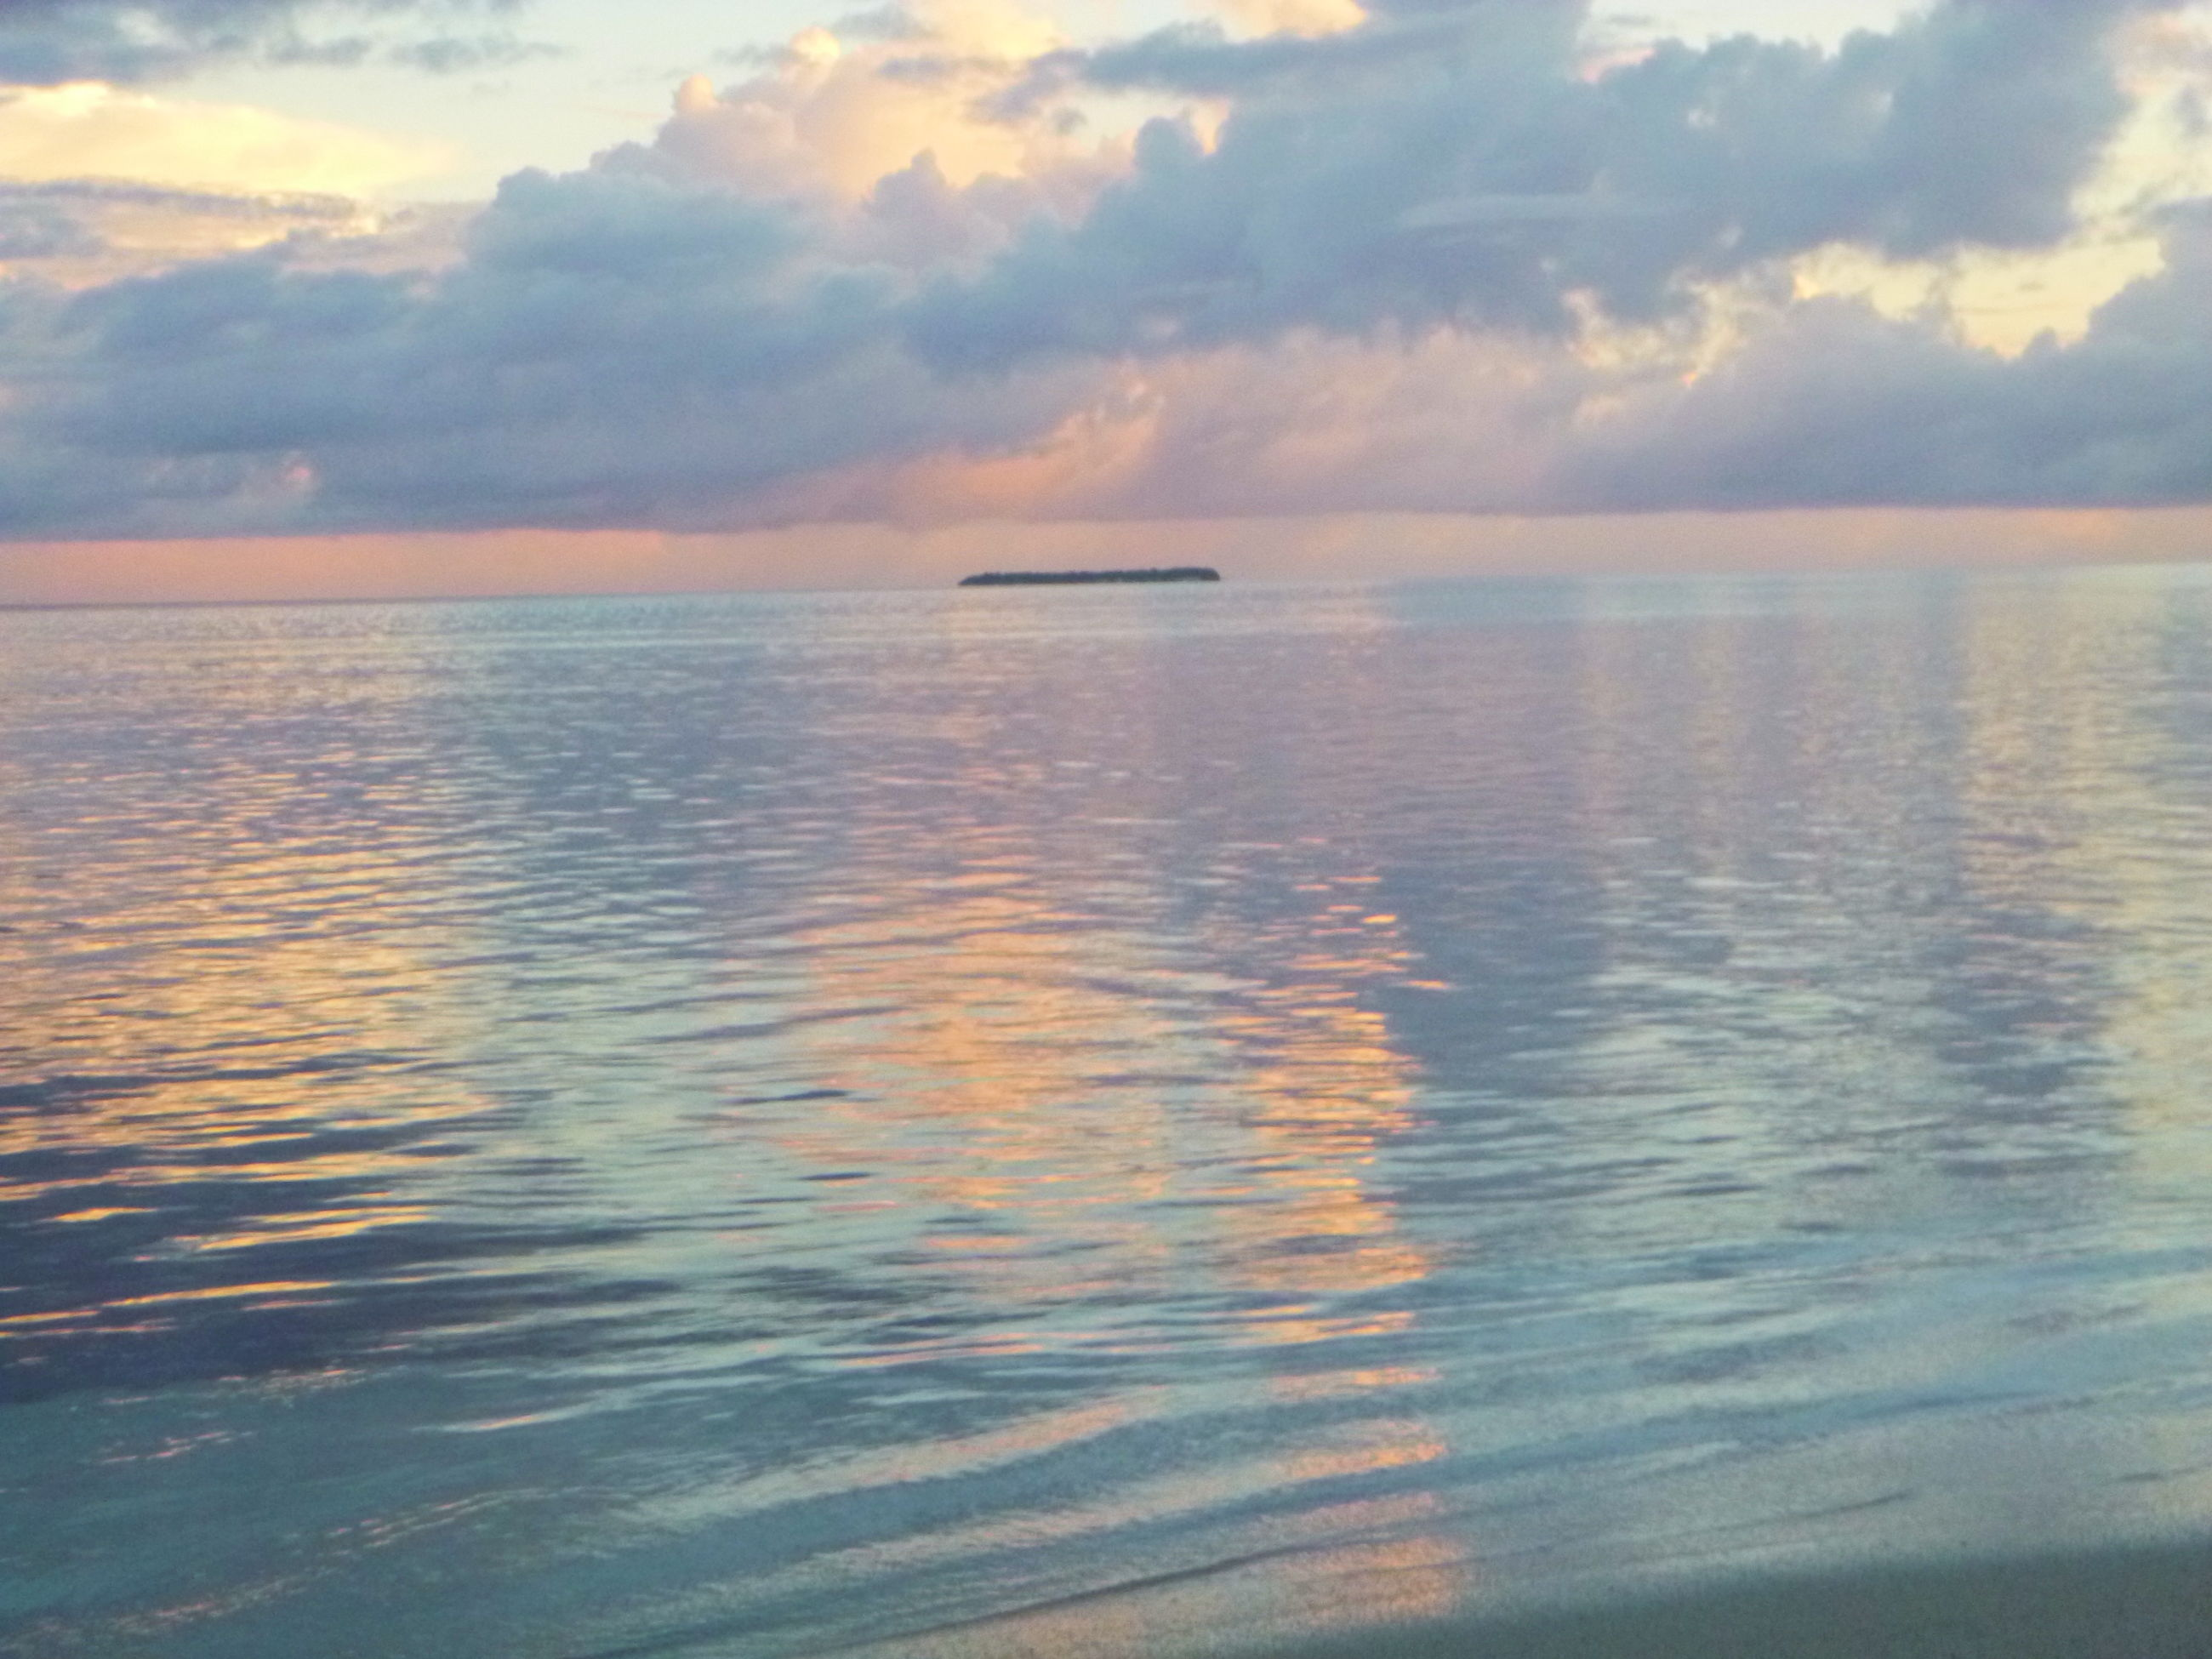 sunset, sea, beauty in nature, nature, outdoors, nautical vessel, sky, no people, scenics, cloud - sky, summer, beach, dramatic sky, day, water, horizon over water